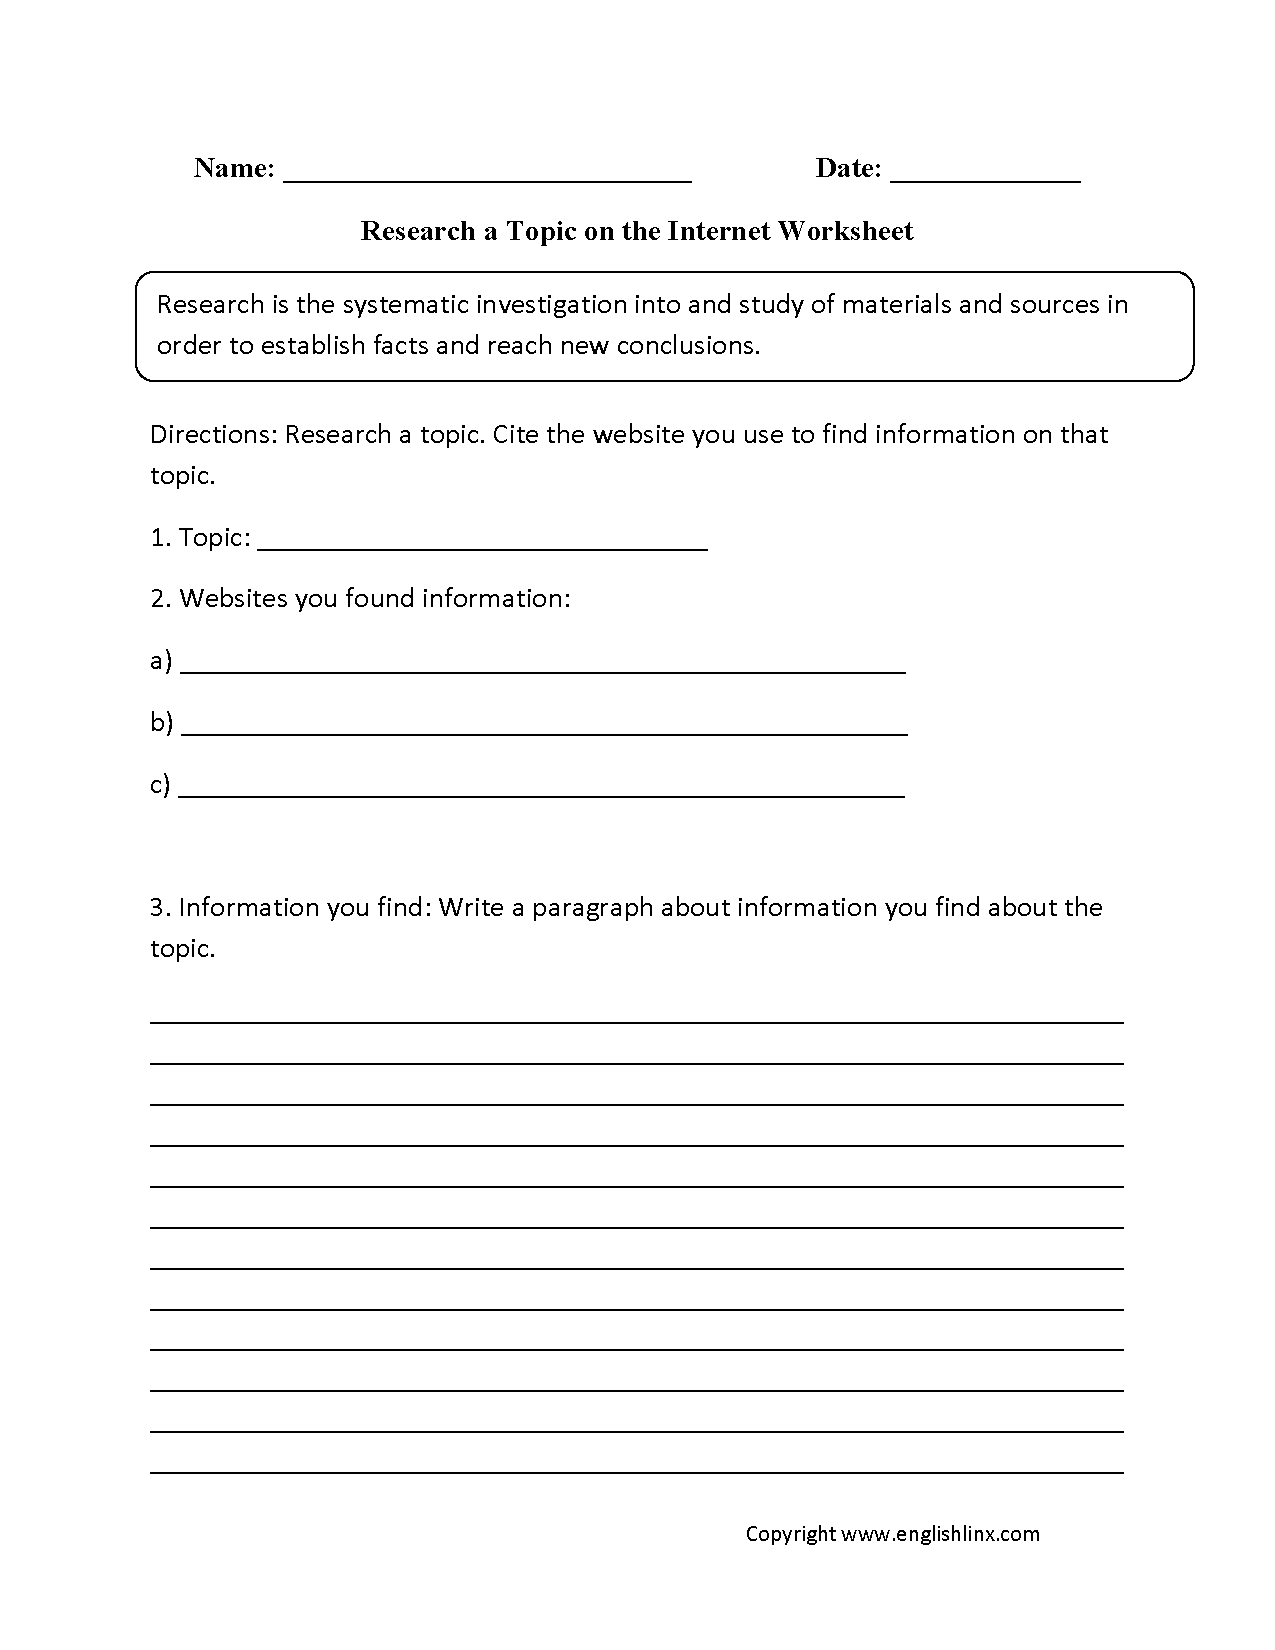 Aldiablosus  Prepossessing Englishlinxcom  Research Worksheets With Extraordinary On The Internet Worksheet With Charming Free Reading Worksheet Also Even Numbers Worksheets In Addition Adding  Addends Worksheet And Possessive Nouns Worksheets Grade  As Well As English Editing Worksheets Additionally Reducing Fractions Worksheet Th Grade From Englishlinxcom With Aldiablosus  Extraordinary Englishlinxcom  Research Worksheets With Charming On The Internet Worksheet And Prepossessing Free Reading Worksheet Also Even Numbers Worksheets In Addition Adding  Addends Worksheet From Englishlinxcom